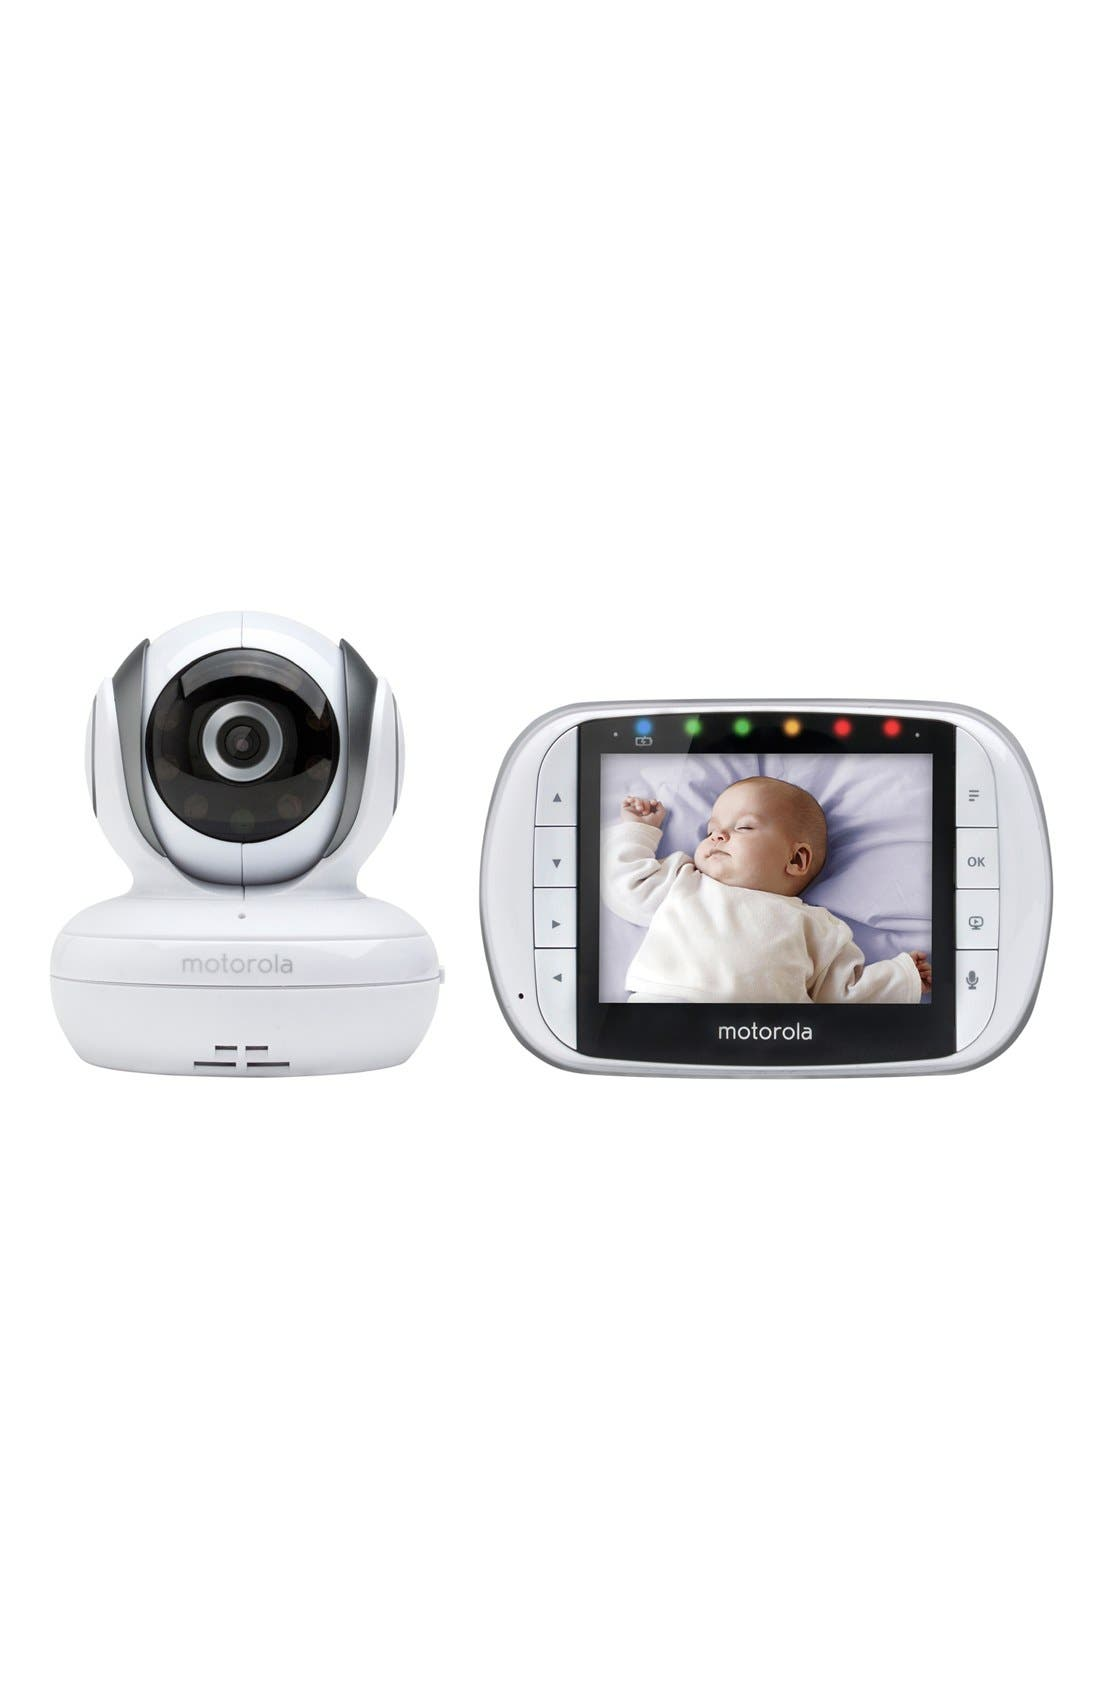 MBP36S Wireless Digital Infrared Video Baby Monitor,                         Main,                         color, 100